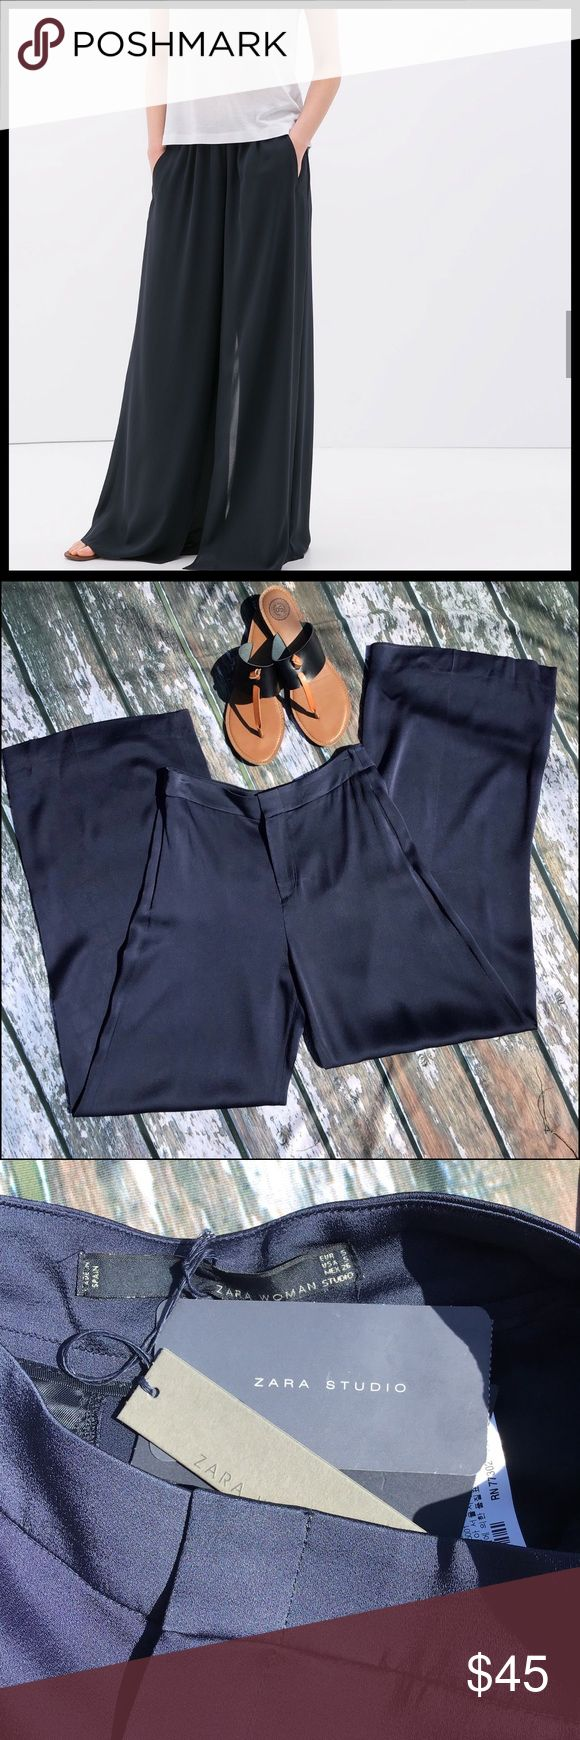 158 Best My Posh Closet Images On Pinterest Elaine Navy Top Leux Studio Xs Zara Palazzo Pant Nwt Small